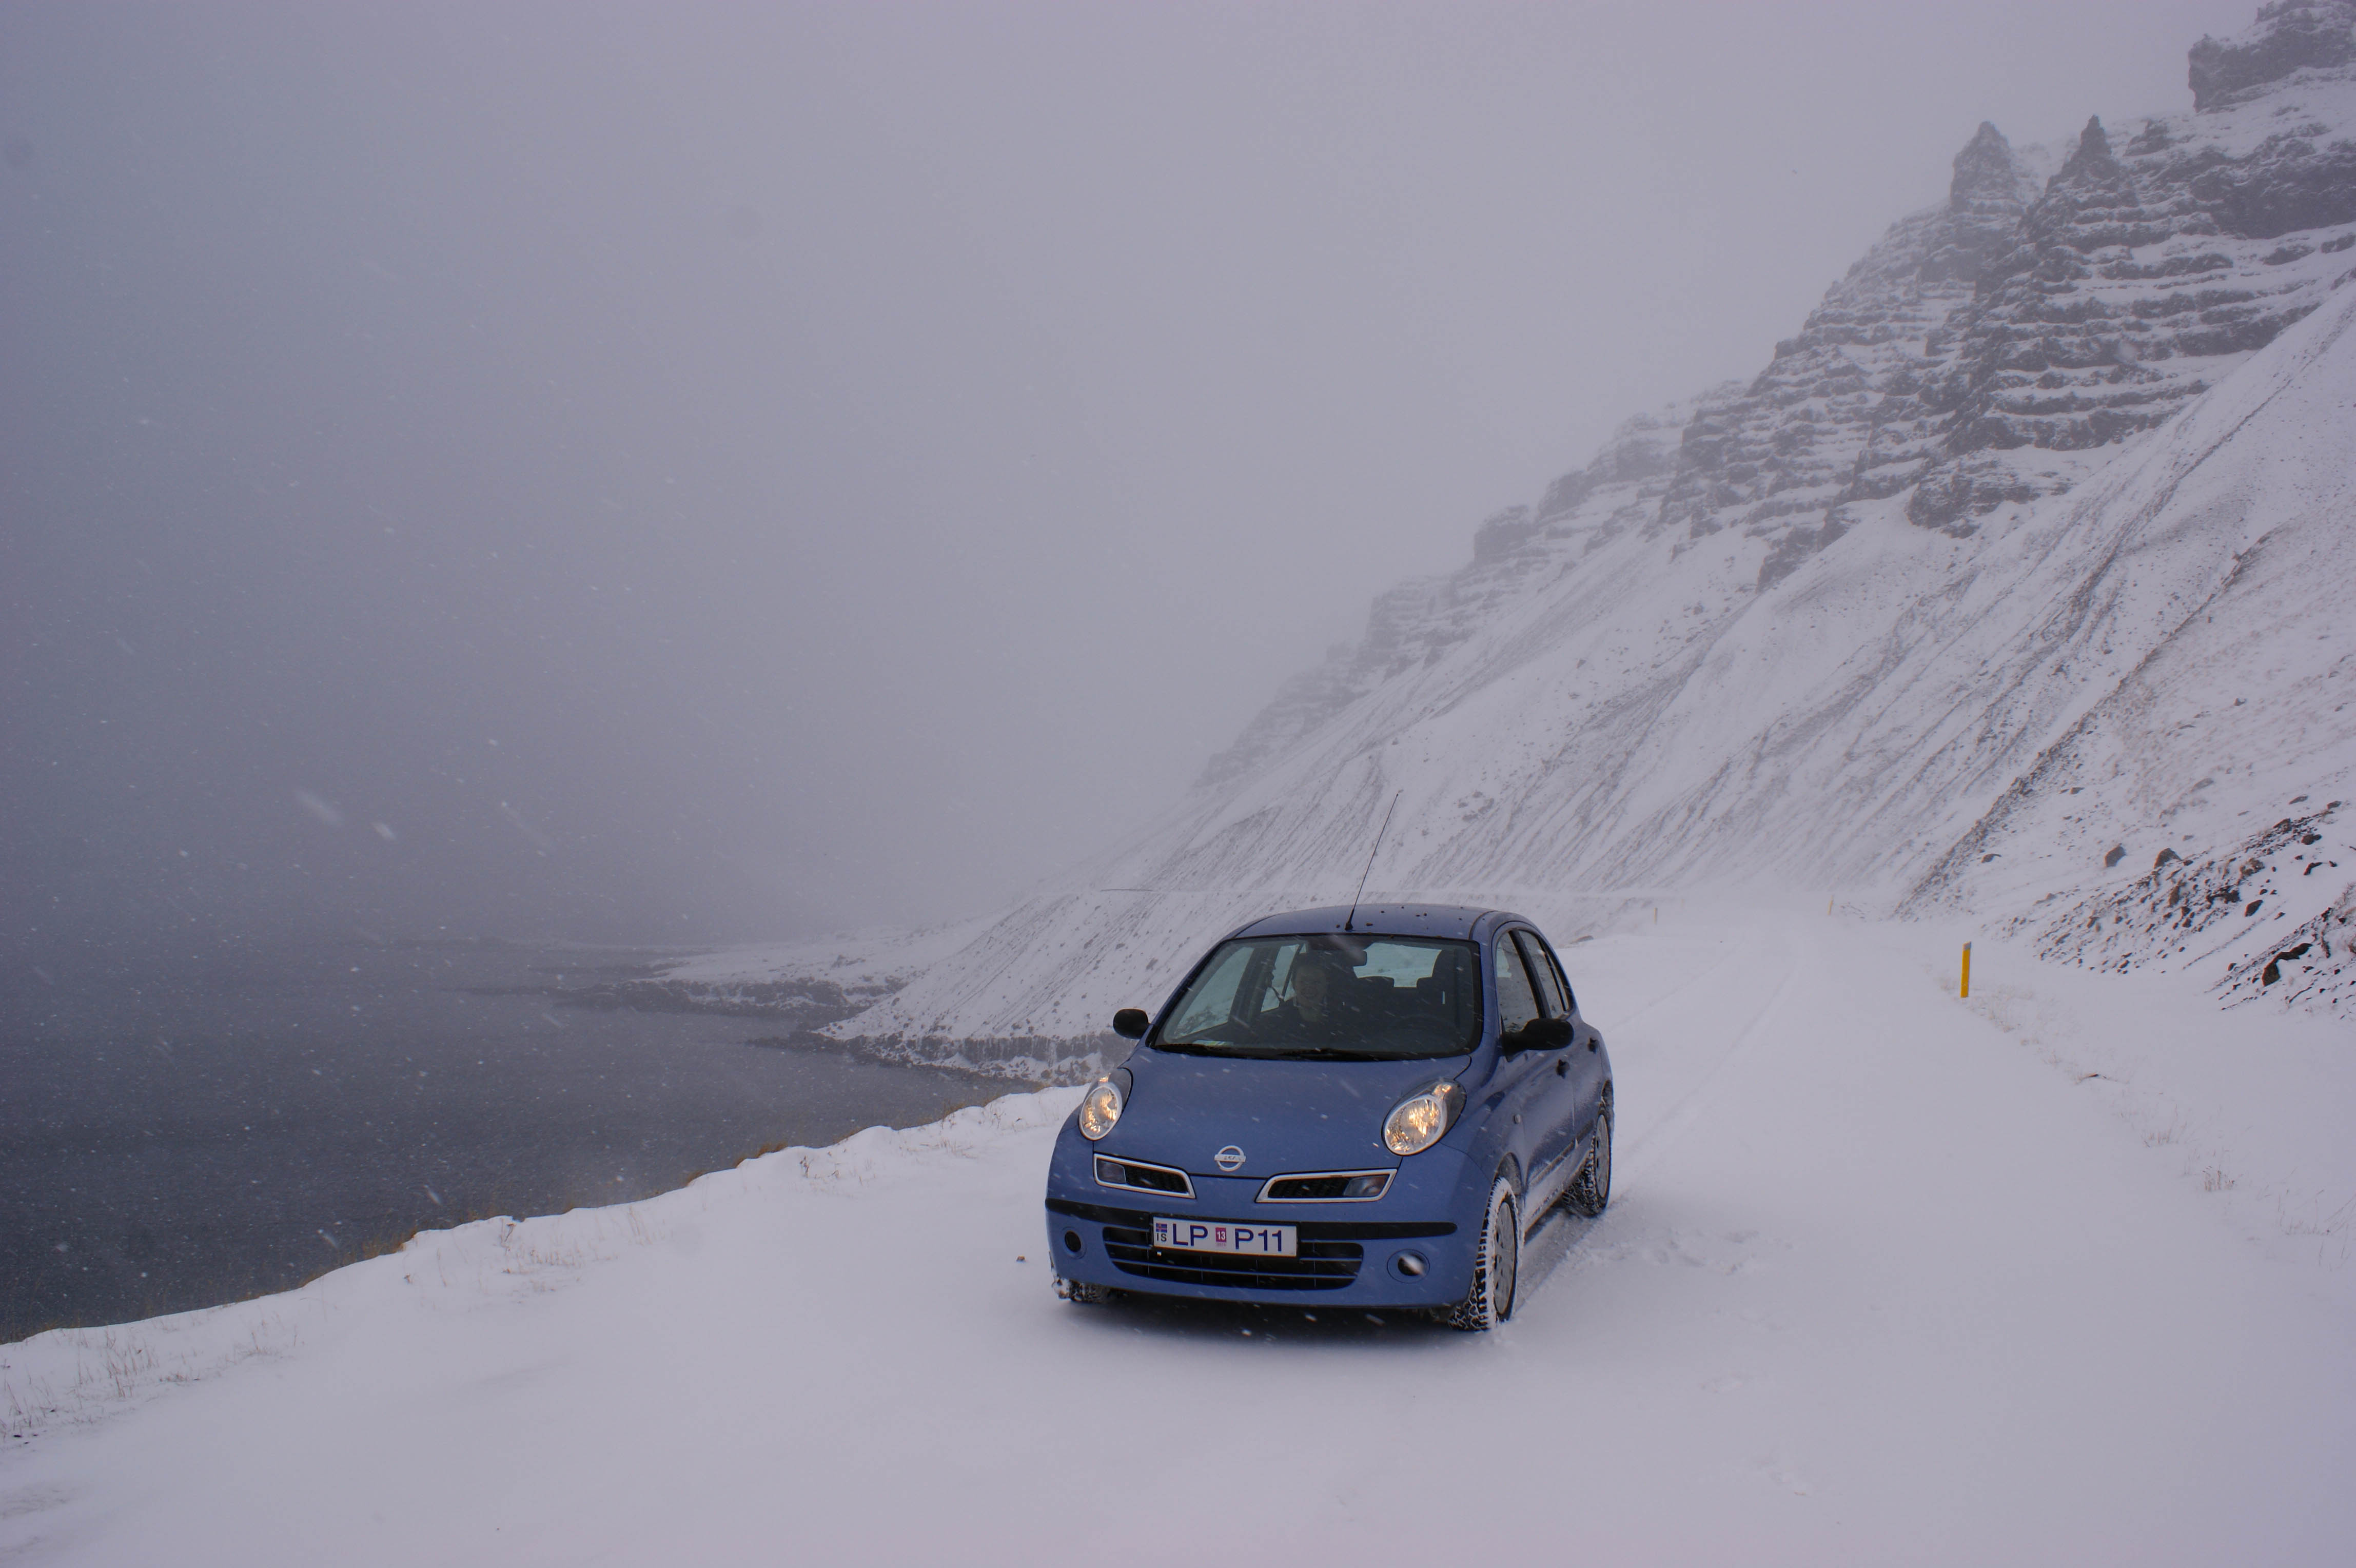 roadtrip iceland winter